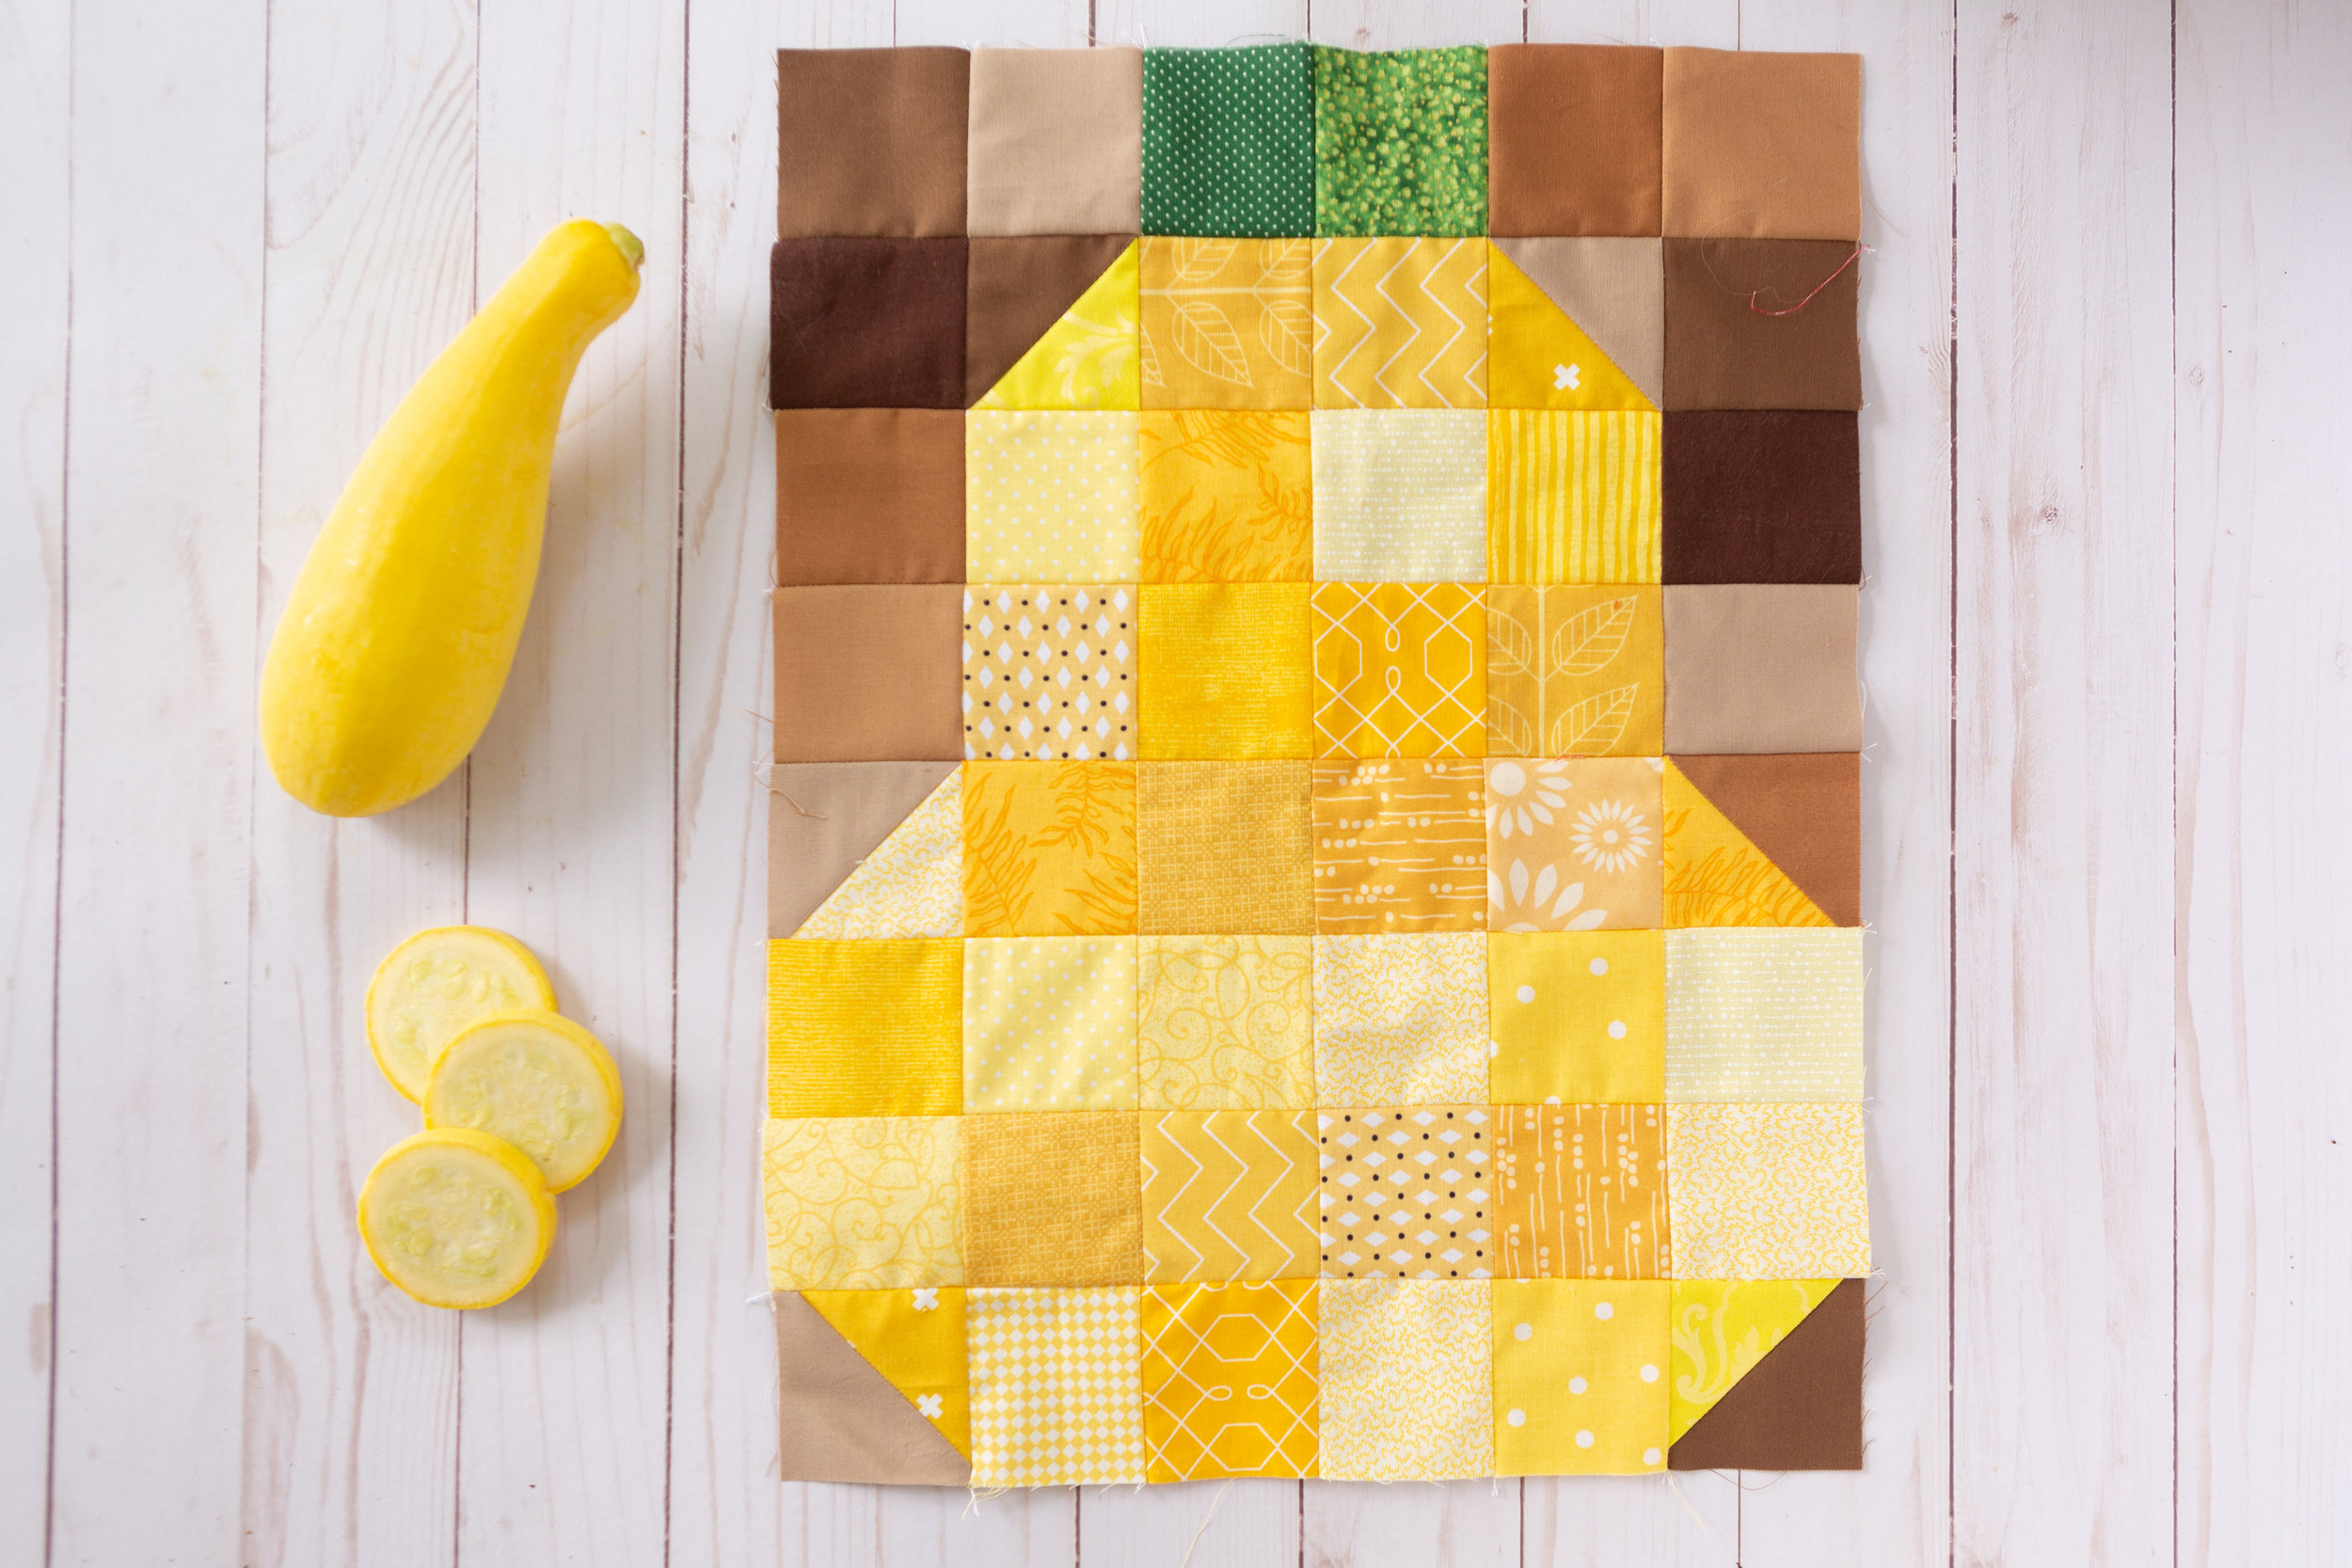 Squash - a Veggie Patch Quilt Block by Katie Mae Quilts